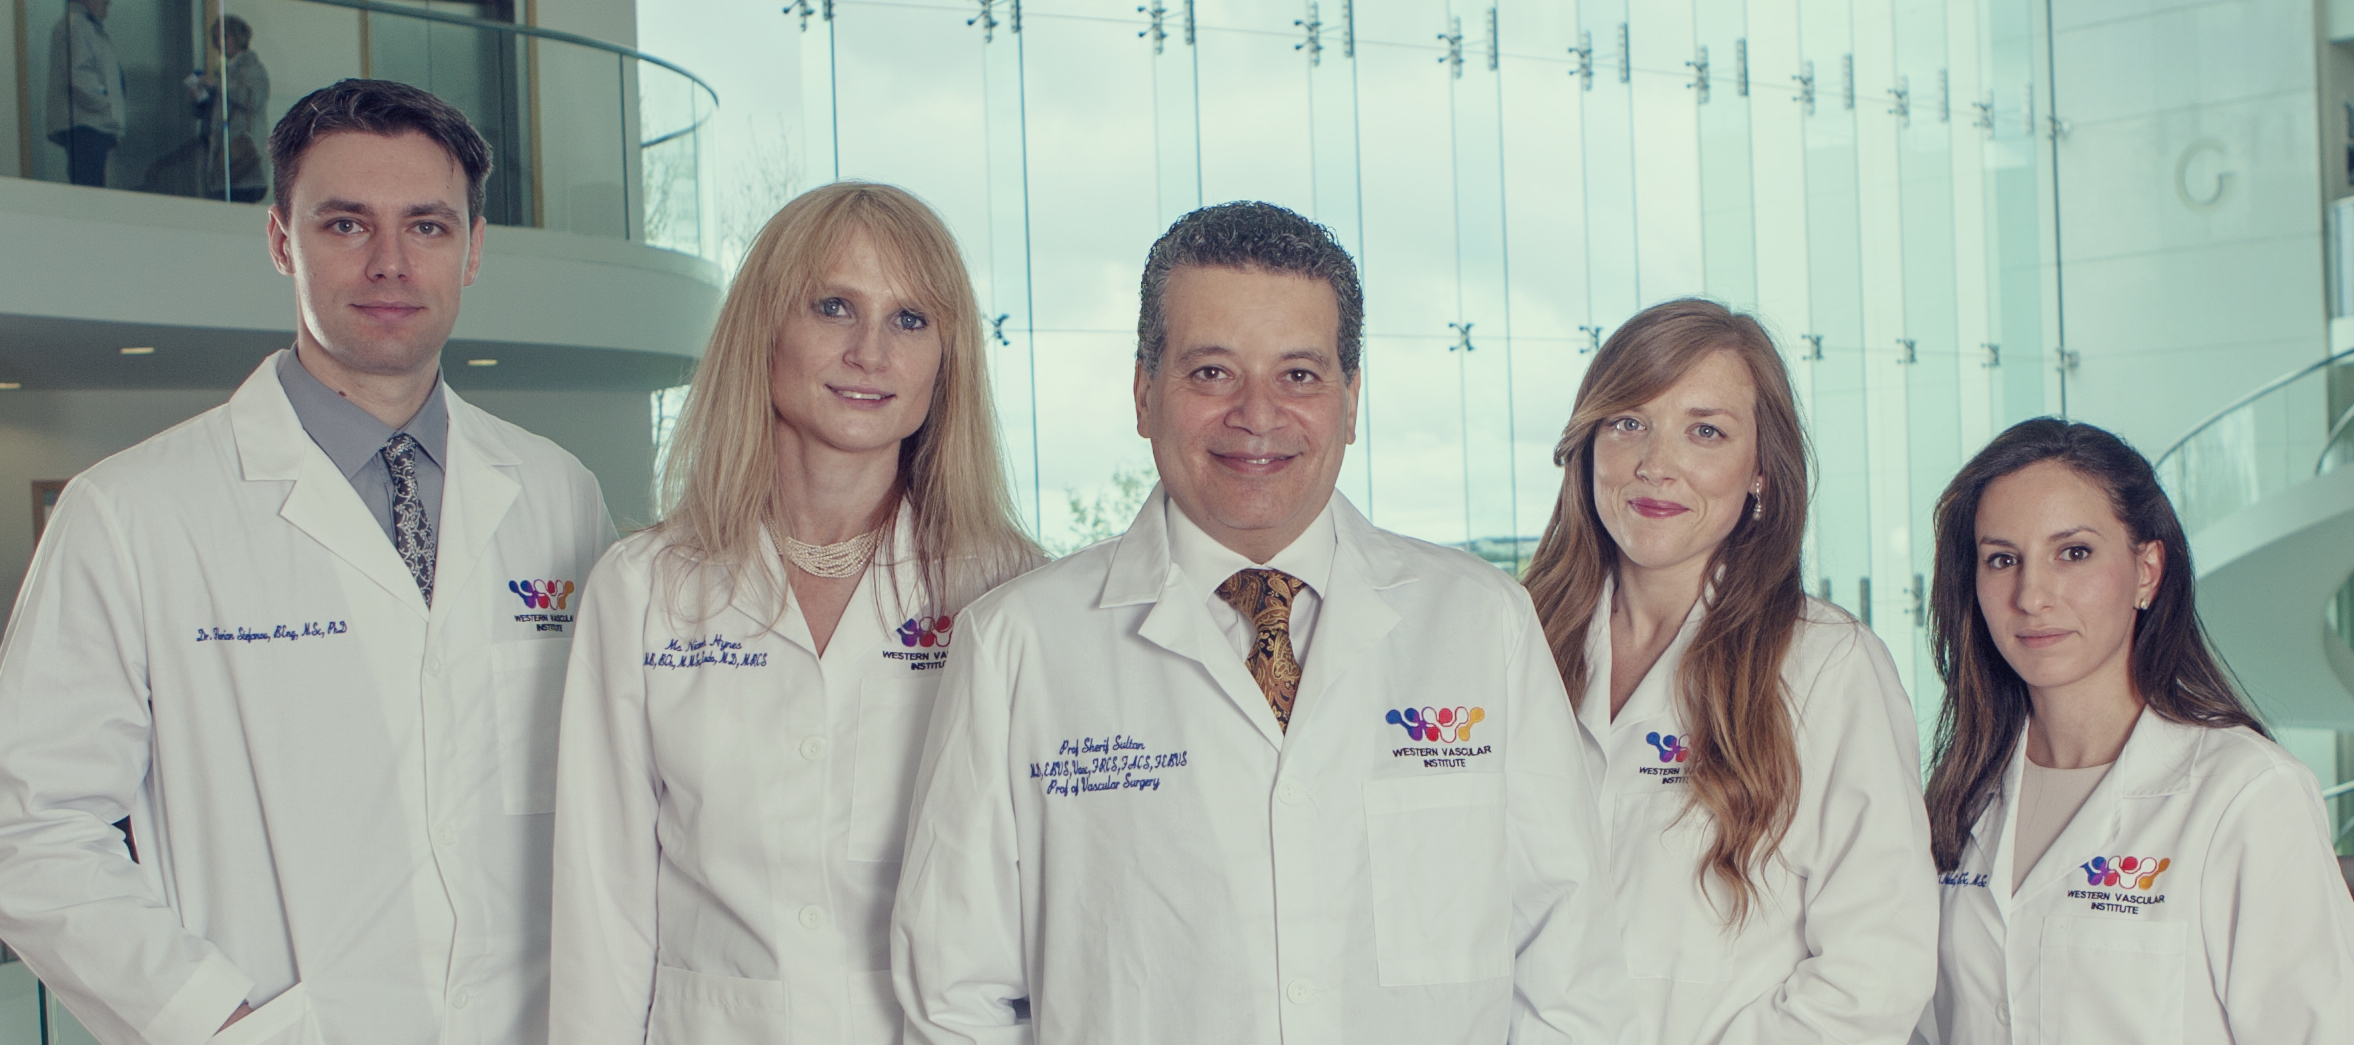 The Western Vascular Institute Team ( left to right: Dr Florian Stefanov, Ms Niamh Hynes, Prof Sherif Sultan, Dr Edel P Kavanagh, Ms Ala Elhelali )